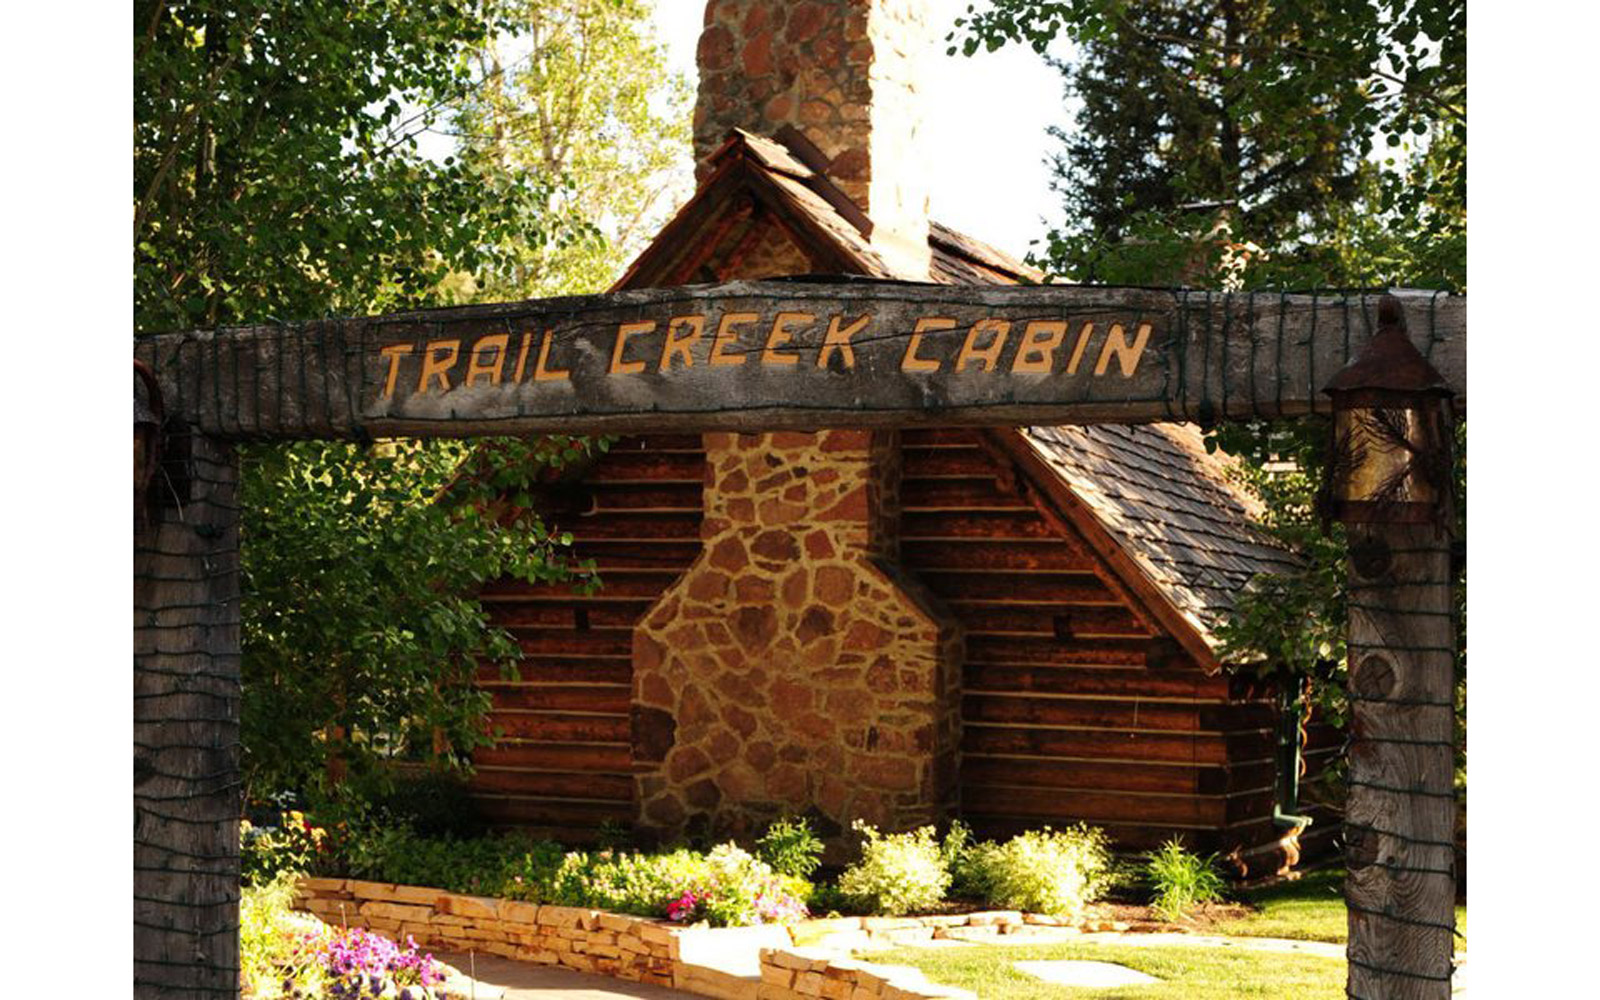 Idaho – Trail Creek Cabin